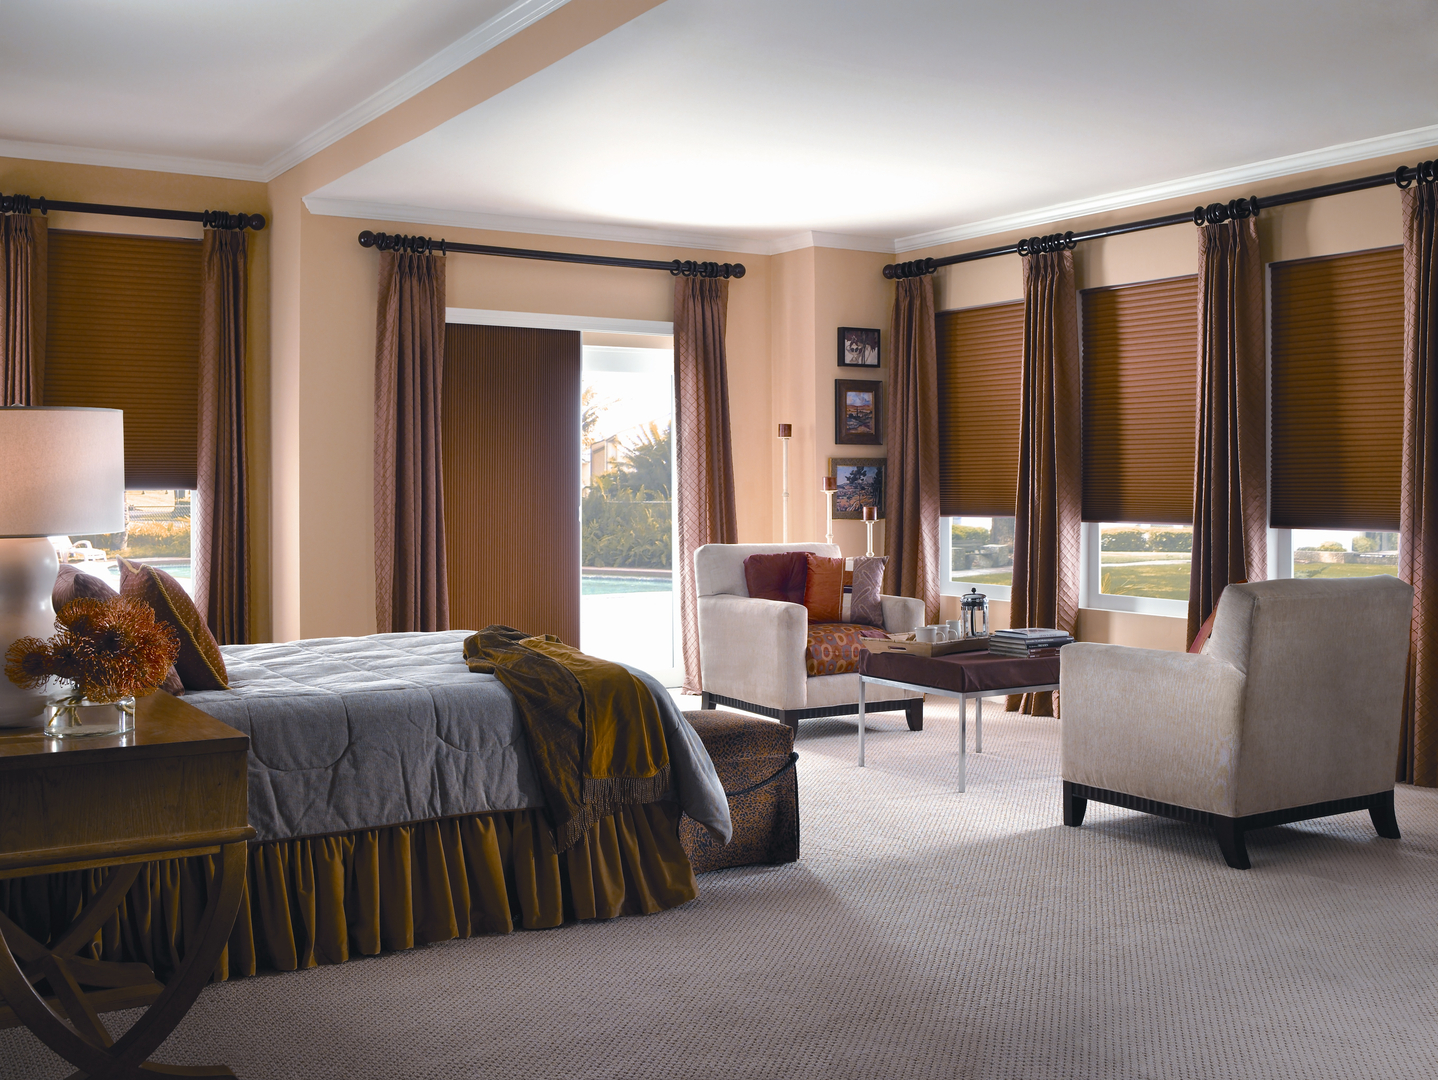 Curtains blackout honeycomb shades blackout shades blinds blinds and - Moodscapes Cellular Vertical Shades Wood Horizontal Blinds Woven Treasures Woven Wood Blinds